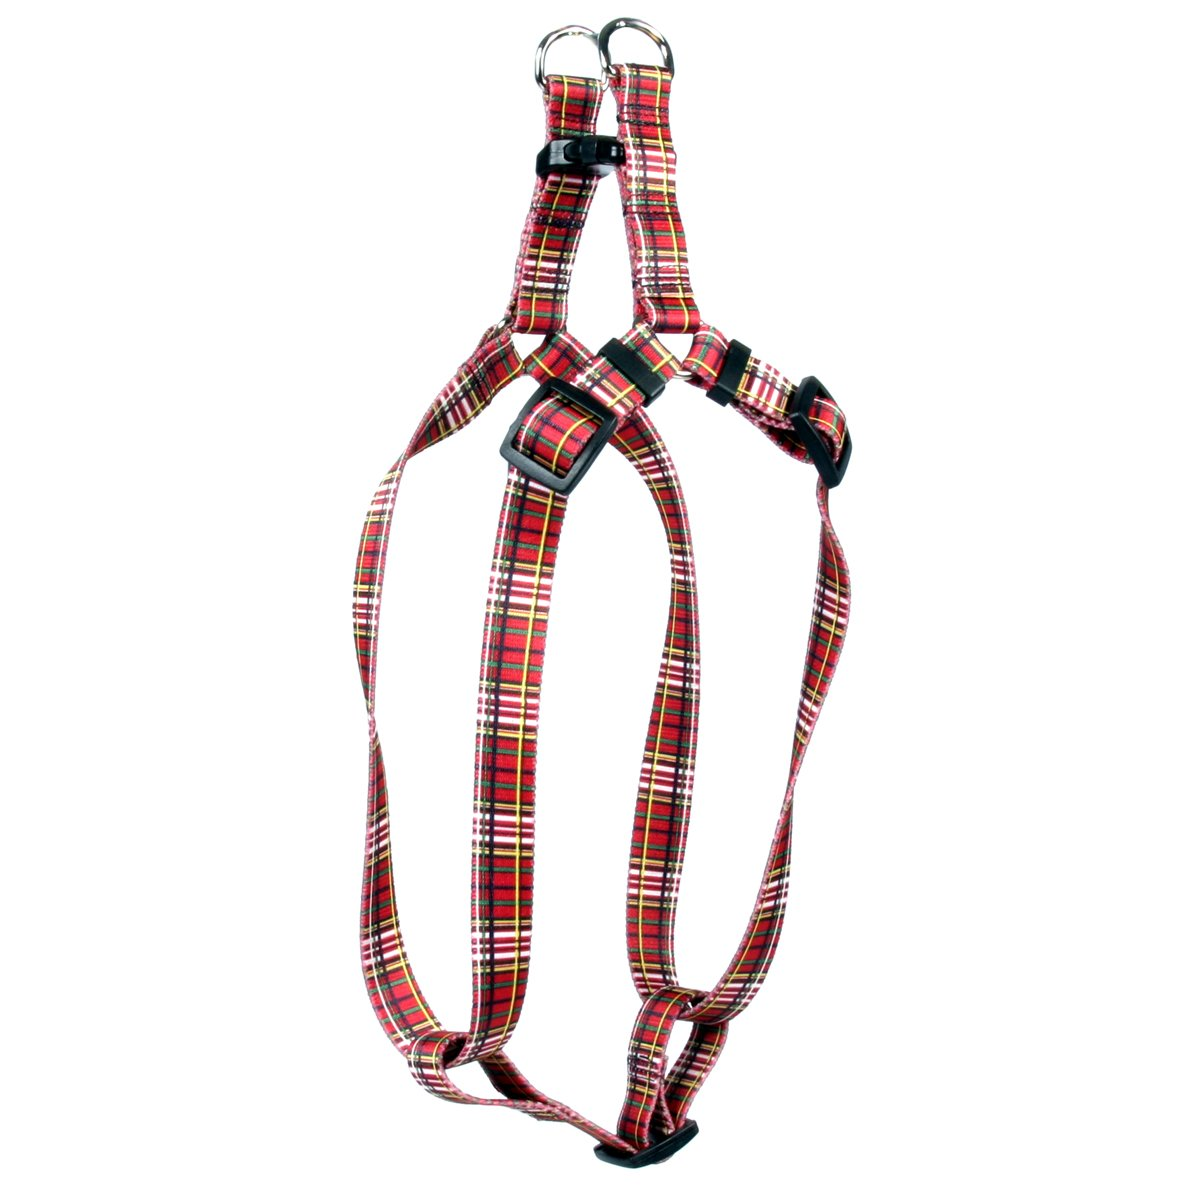 Yellow Dog Design Tartan Red Step-in Dog Harness-Medium-3/4 Wide and fits Chest Circumference of 15 to 25'' by Yellow Dog Design